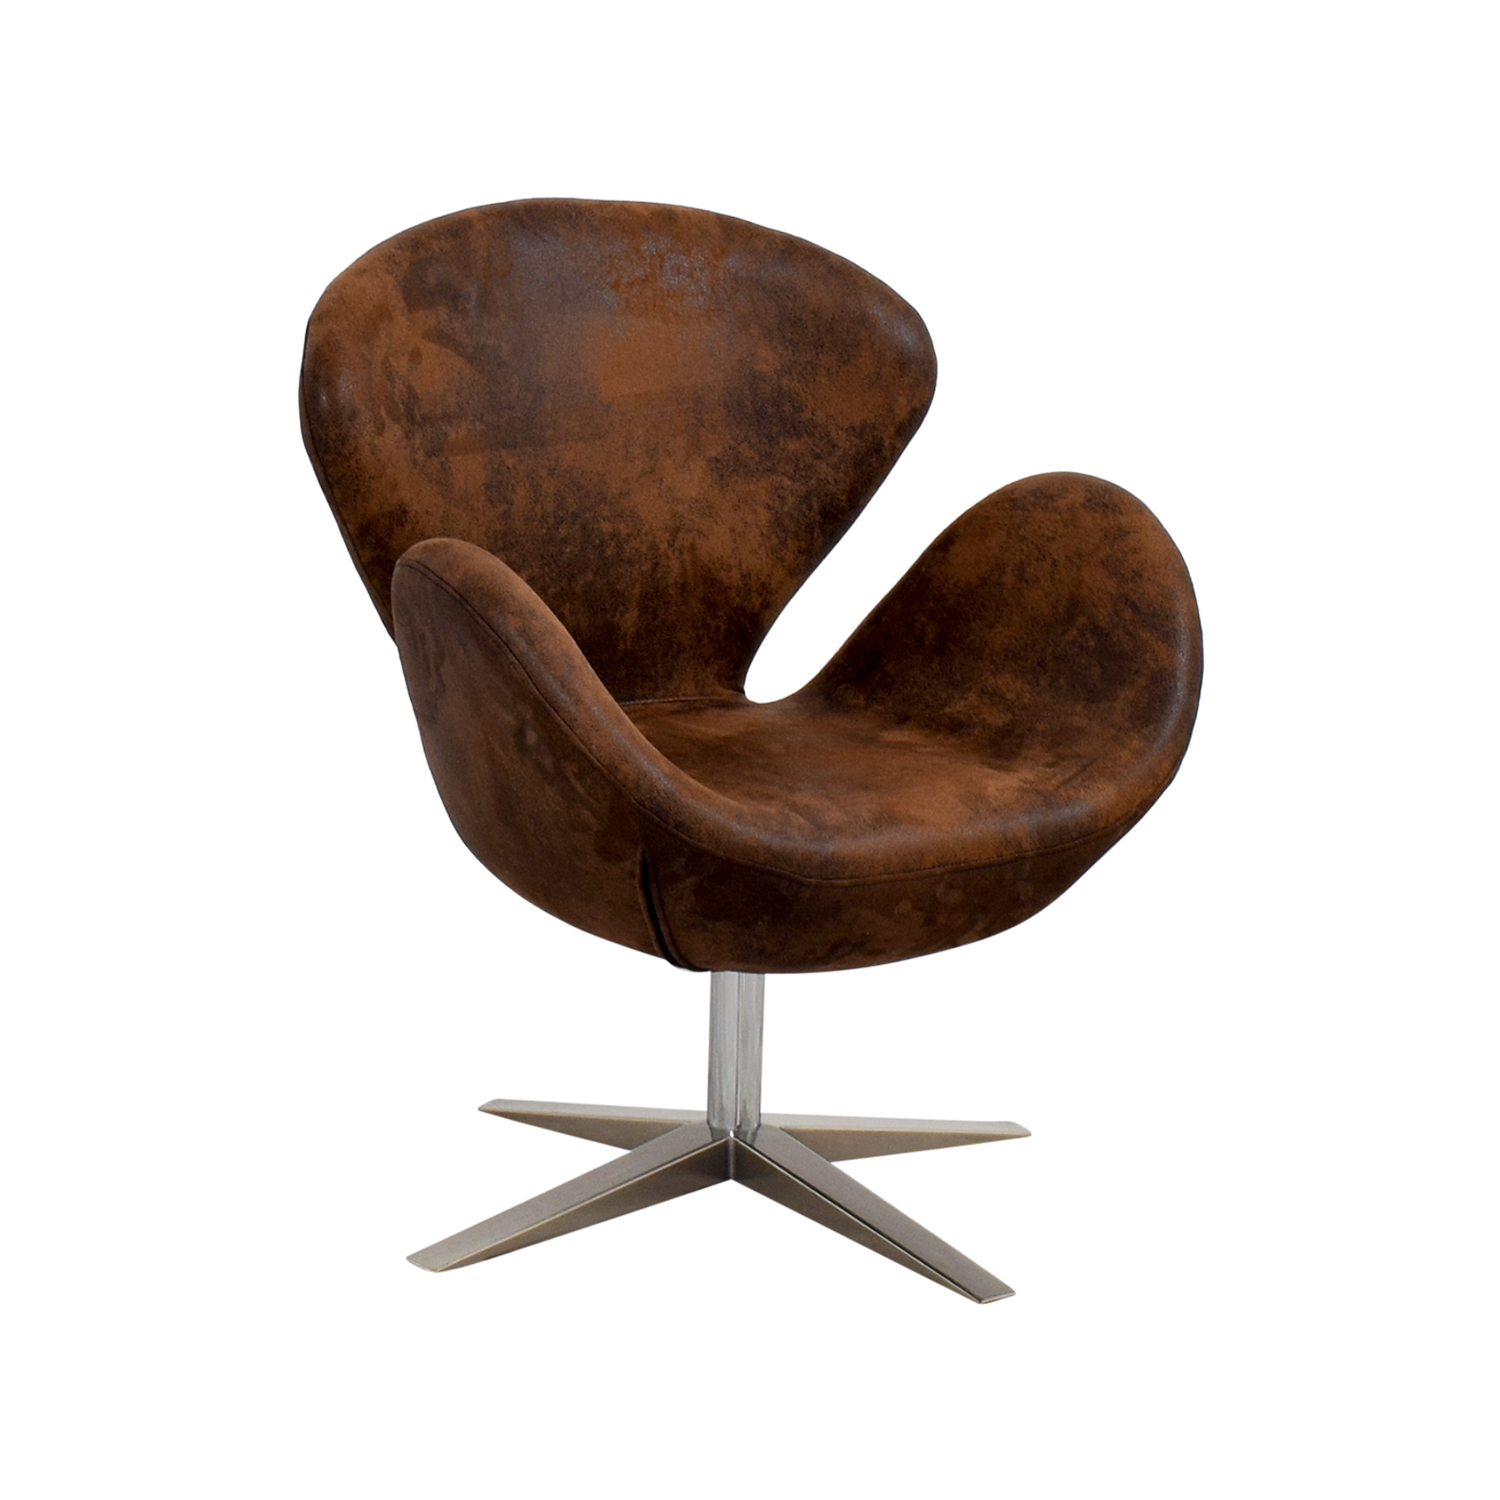 Leather Chairs Target 66 Off Target Target Modern Petal Chair Brown Chairs